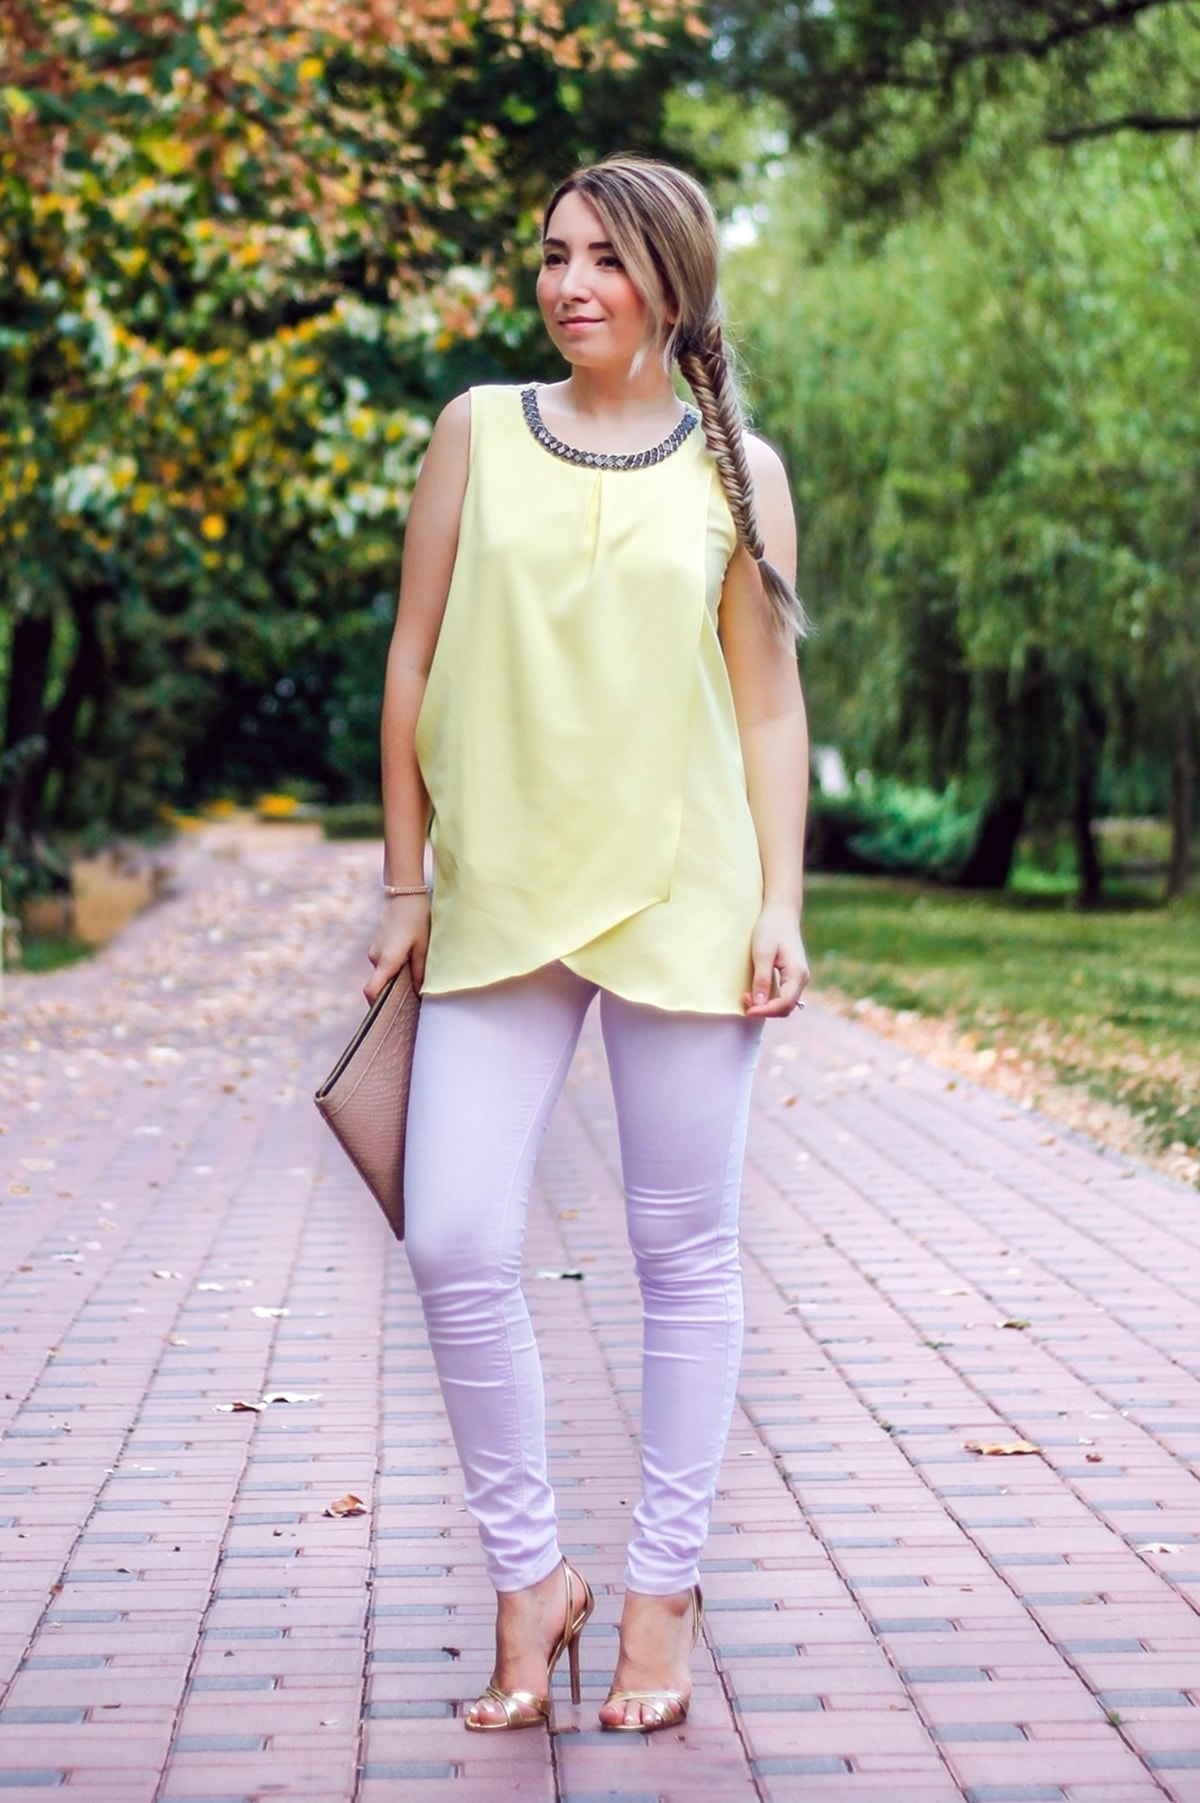 Street style: yellow top, light purple skinny jeans, pastels, outfit, summer look, golden sandals, beige clutch, andreea ristea, fashion blogger